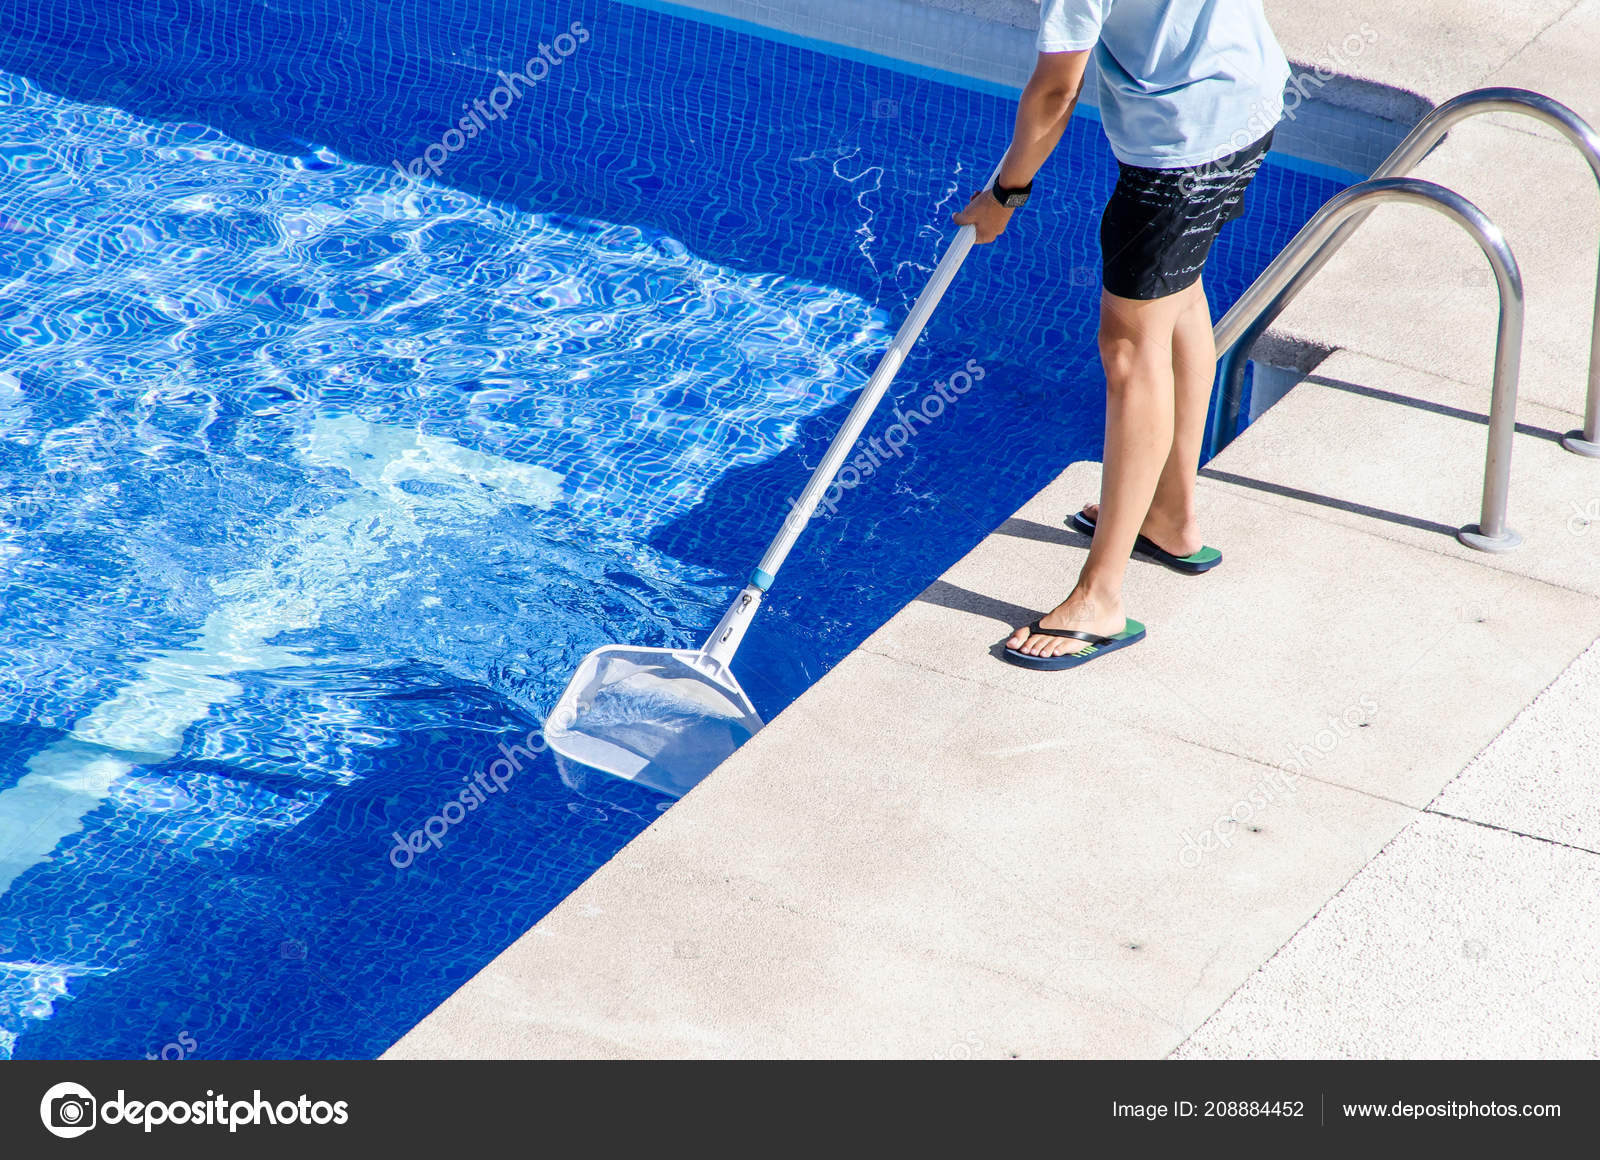 Boy Flip Flops Cleaning Swimming Pool Net — Stock Photo ...